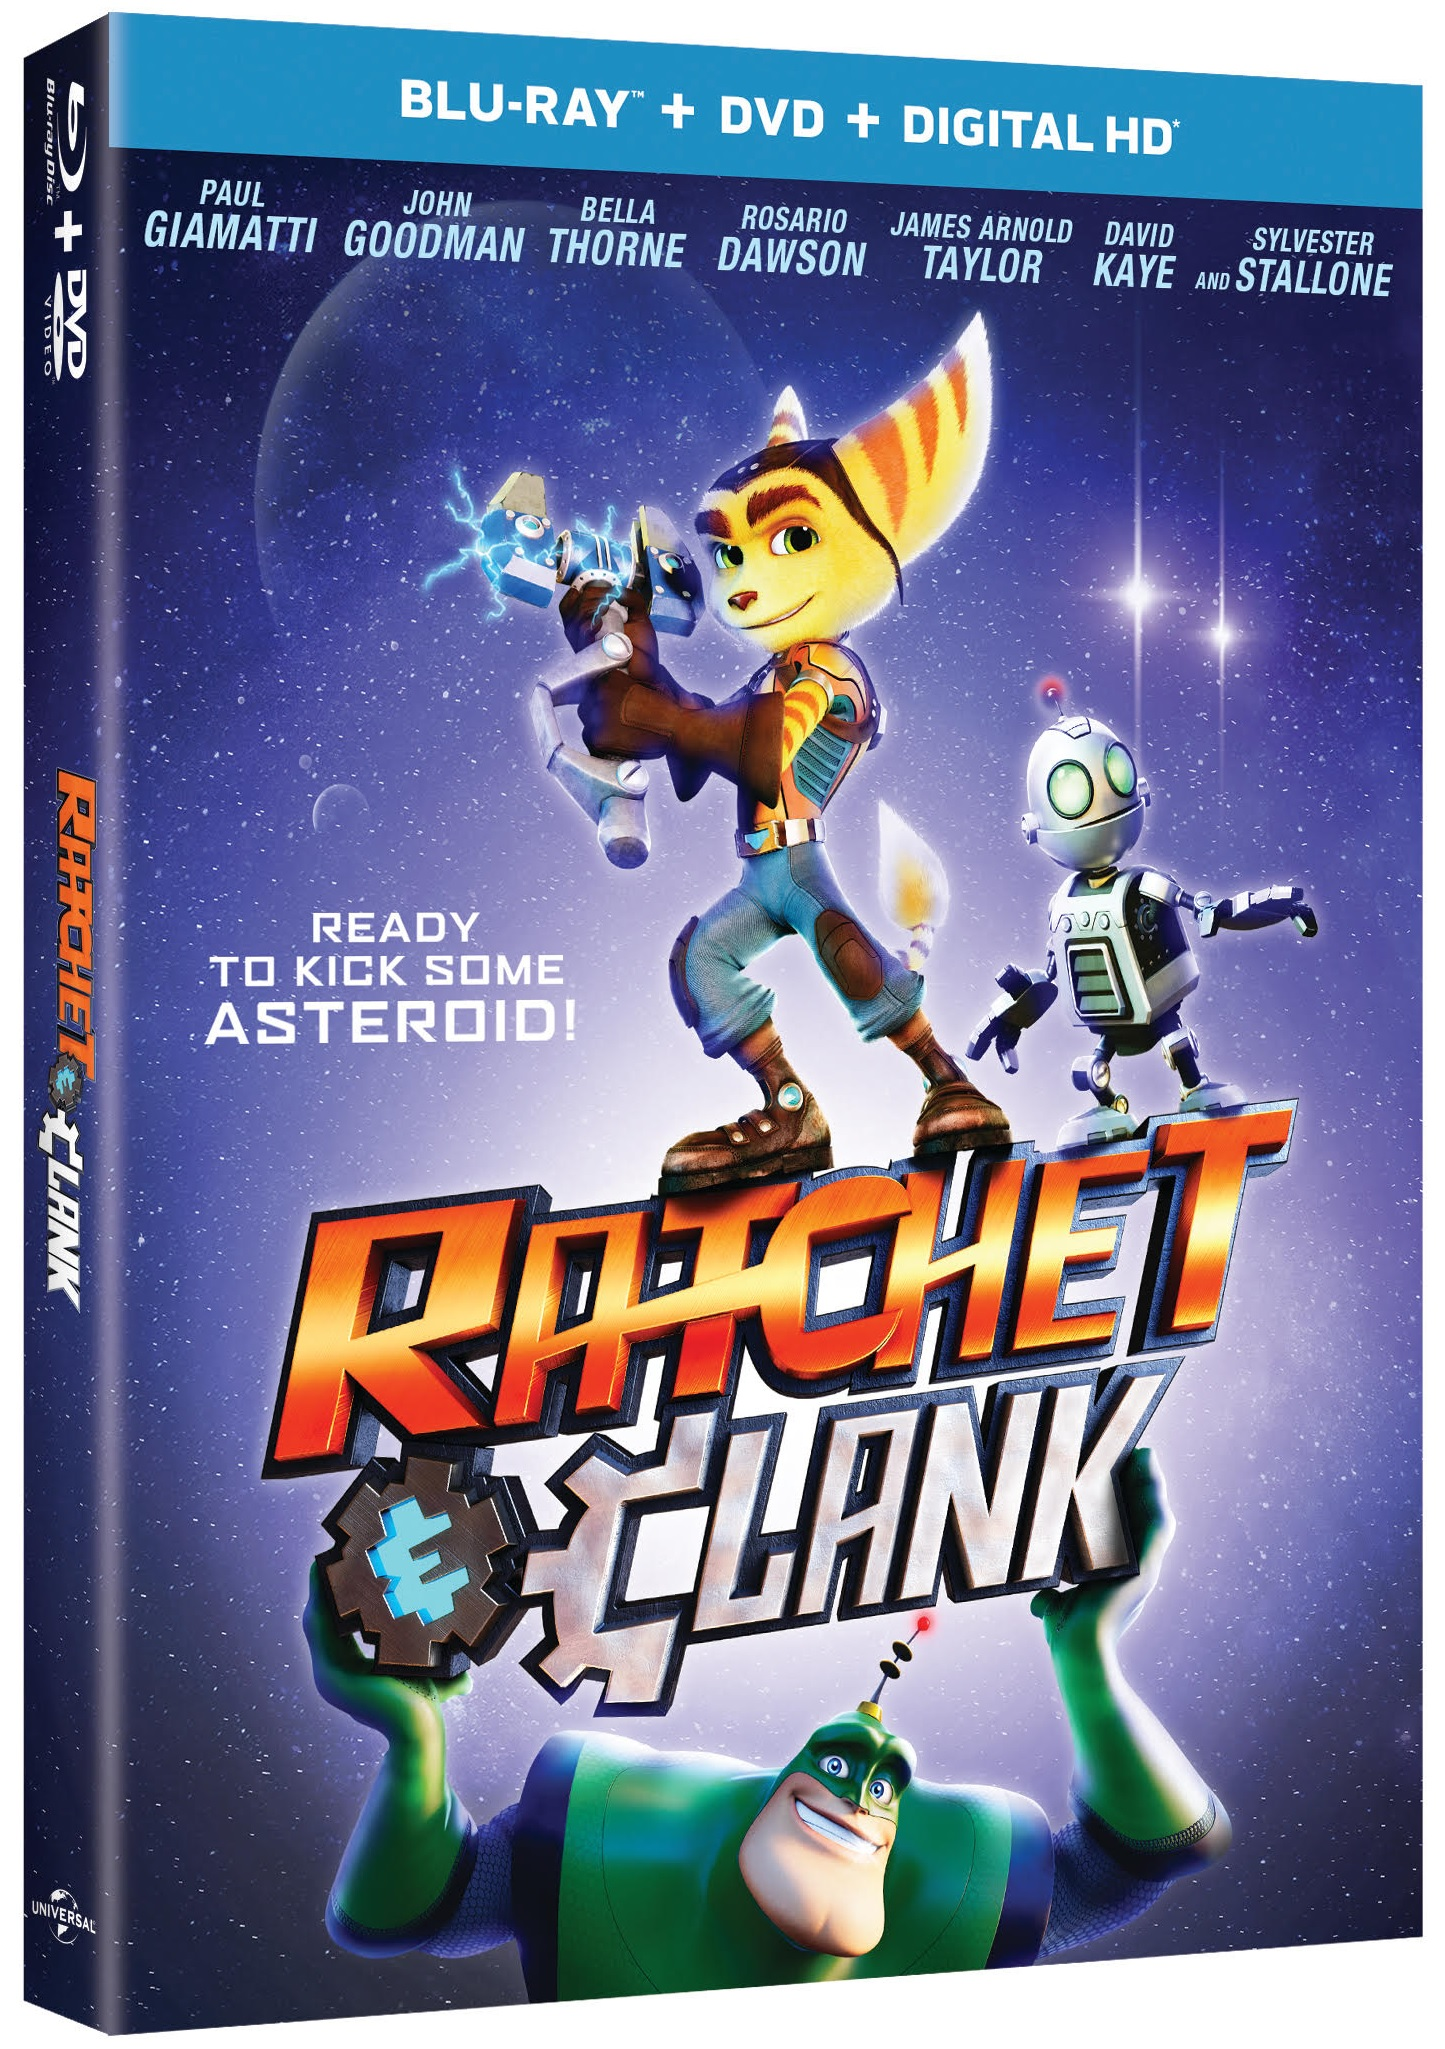 Ratchet And Clank Blu-ray Review